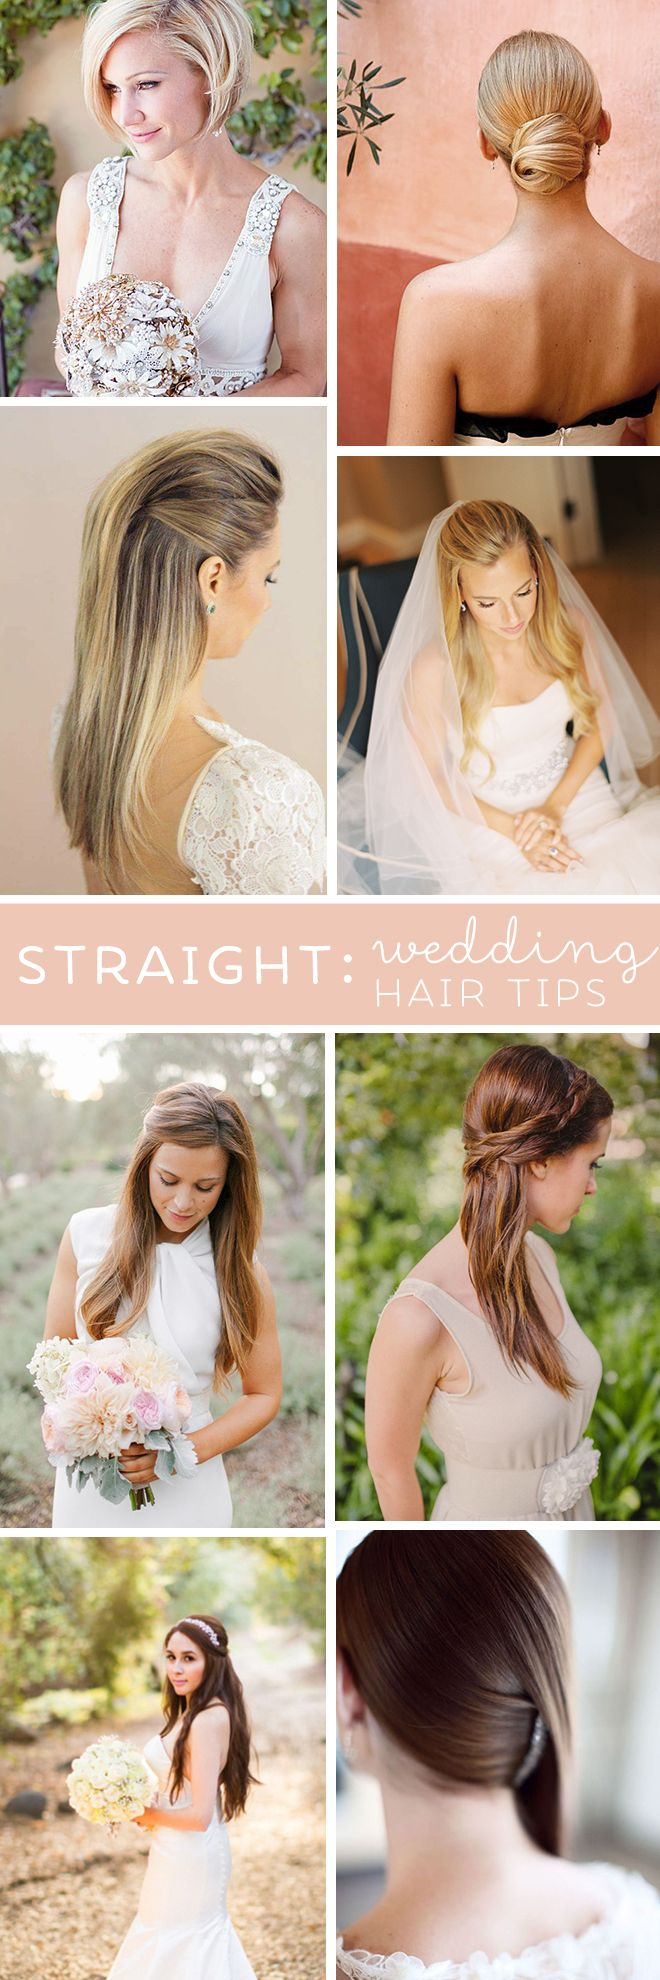 Best Wedding Hair Tips For Wearing Straight Styles Straight Wedding Hair Best Wedding Hairstyles Bridesmaid Hair